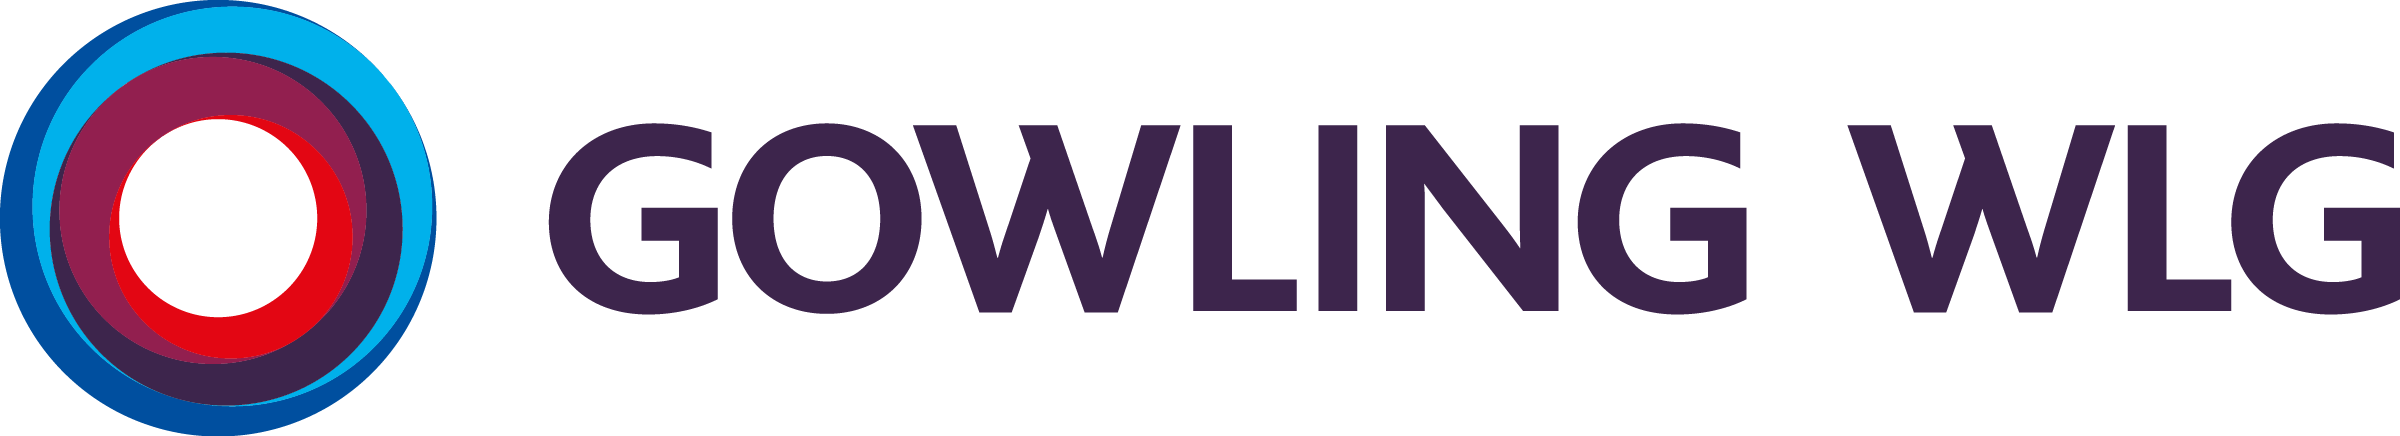 Gowing WLG logo